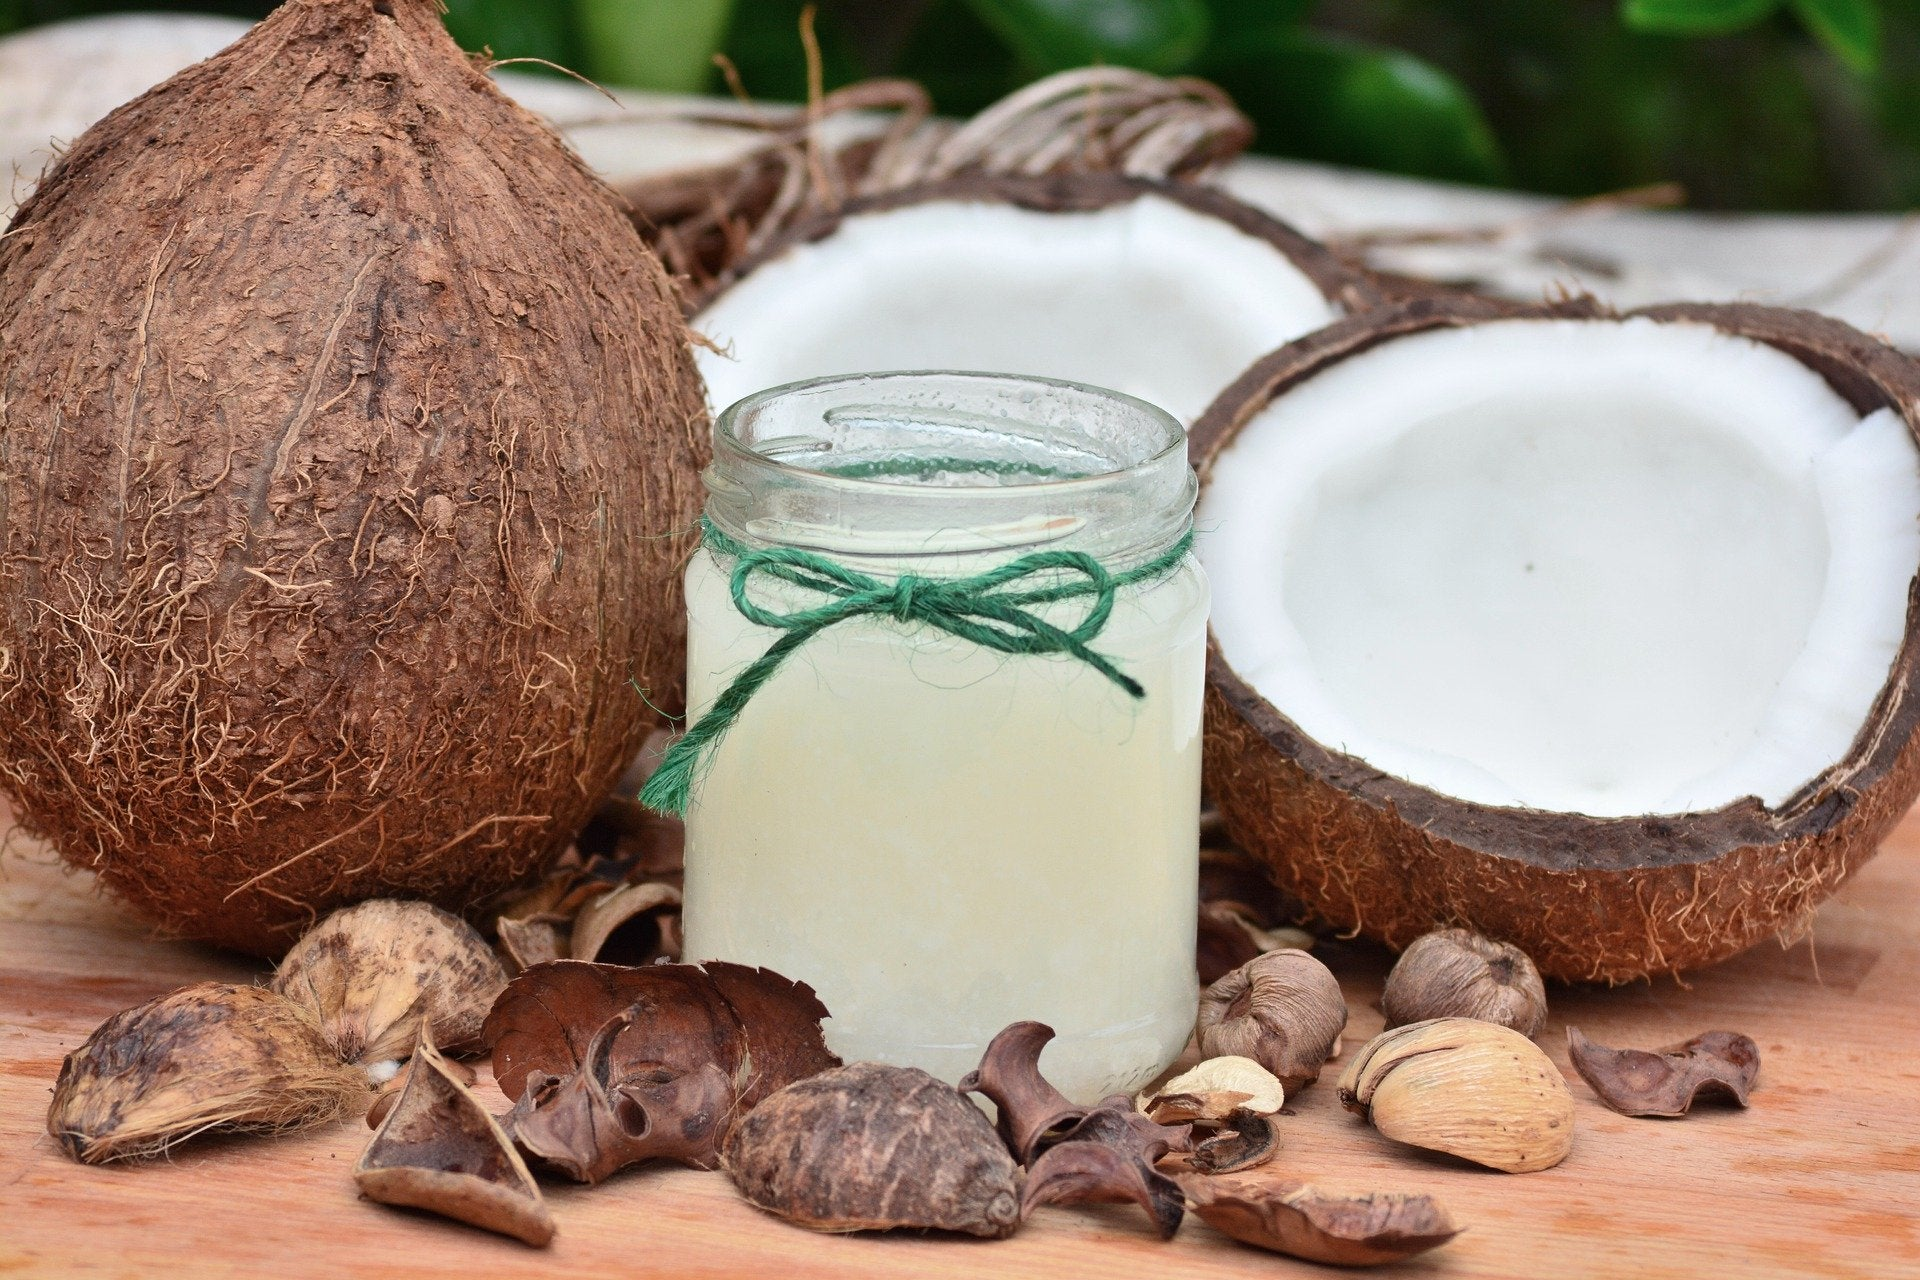 Is Coconut Oil Bad for You?